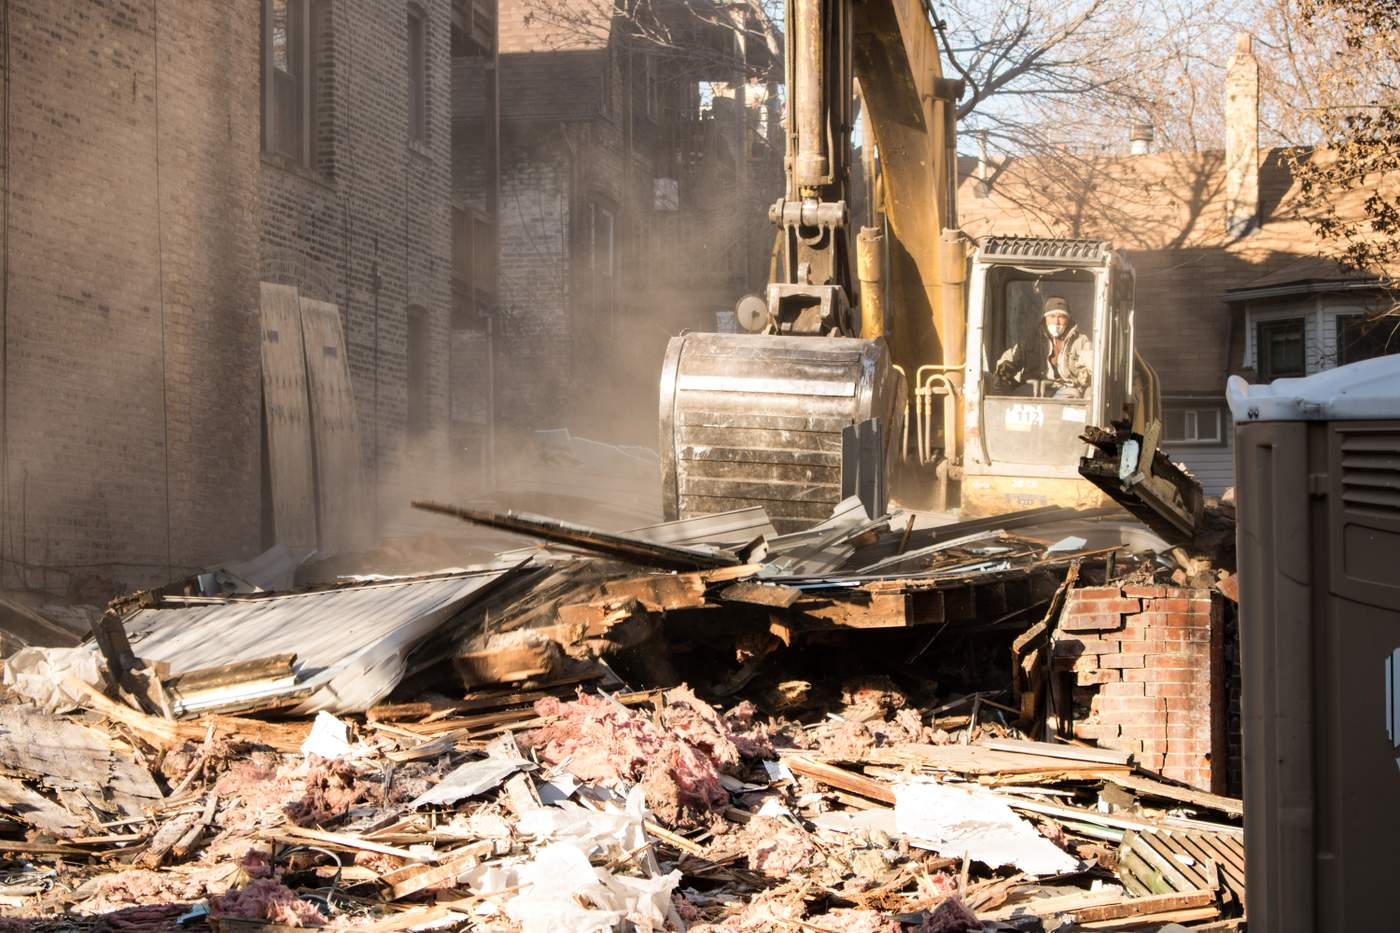 A worker plows through a plume of dust and debris on a demolition site in the Uptown neighborhood. (Photo: Manny Ramos)